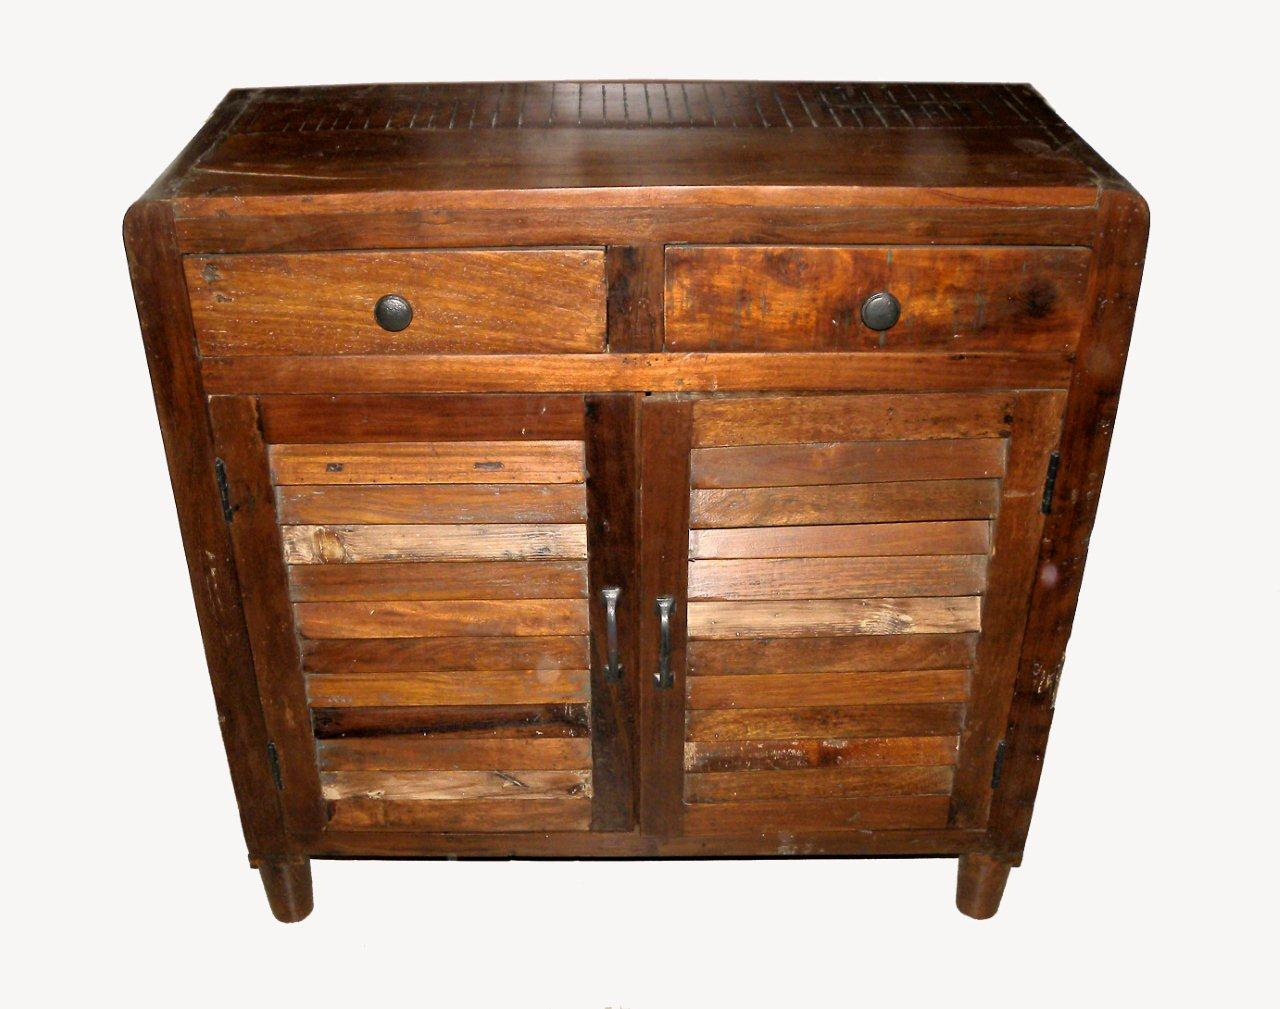 Amazing photo of Wooden Recycle Cabinet # A228 Home Decor Theshopy with #B05119 color and 1280x1009 pixels